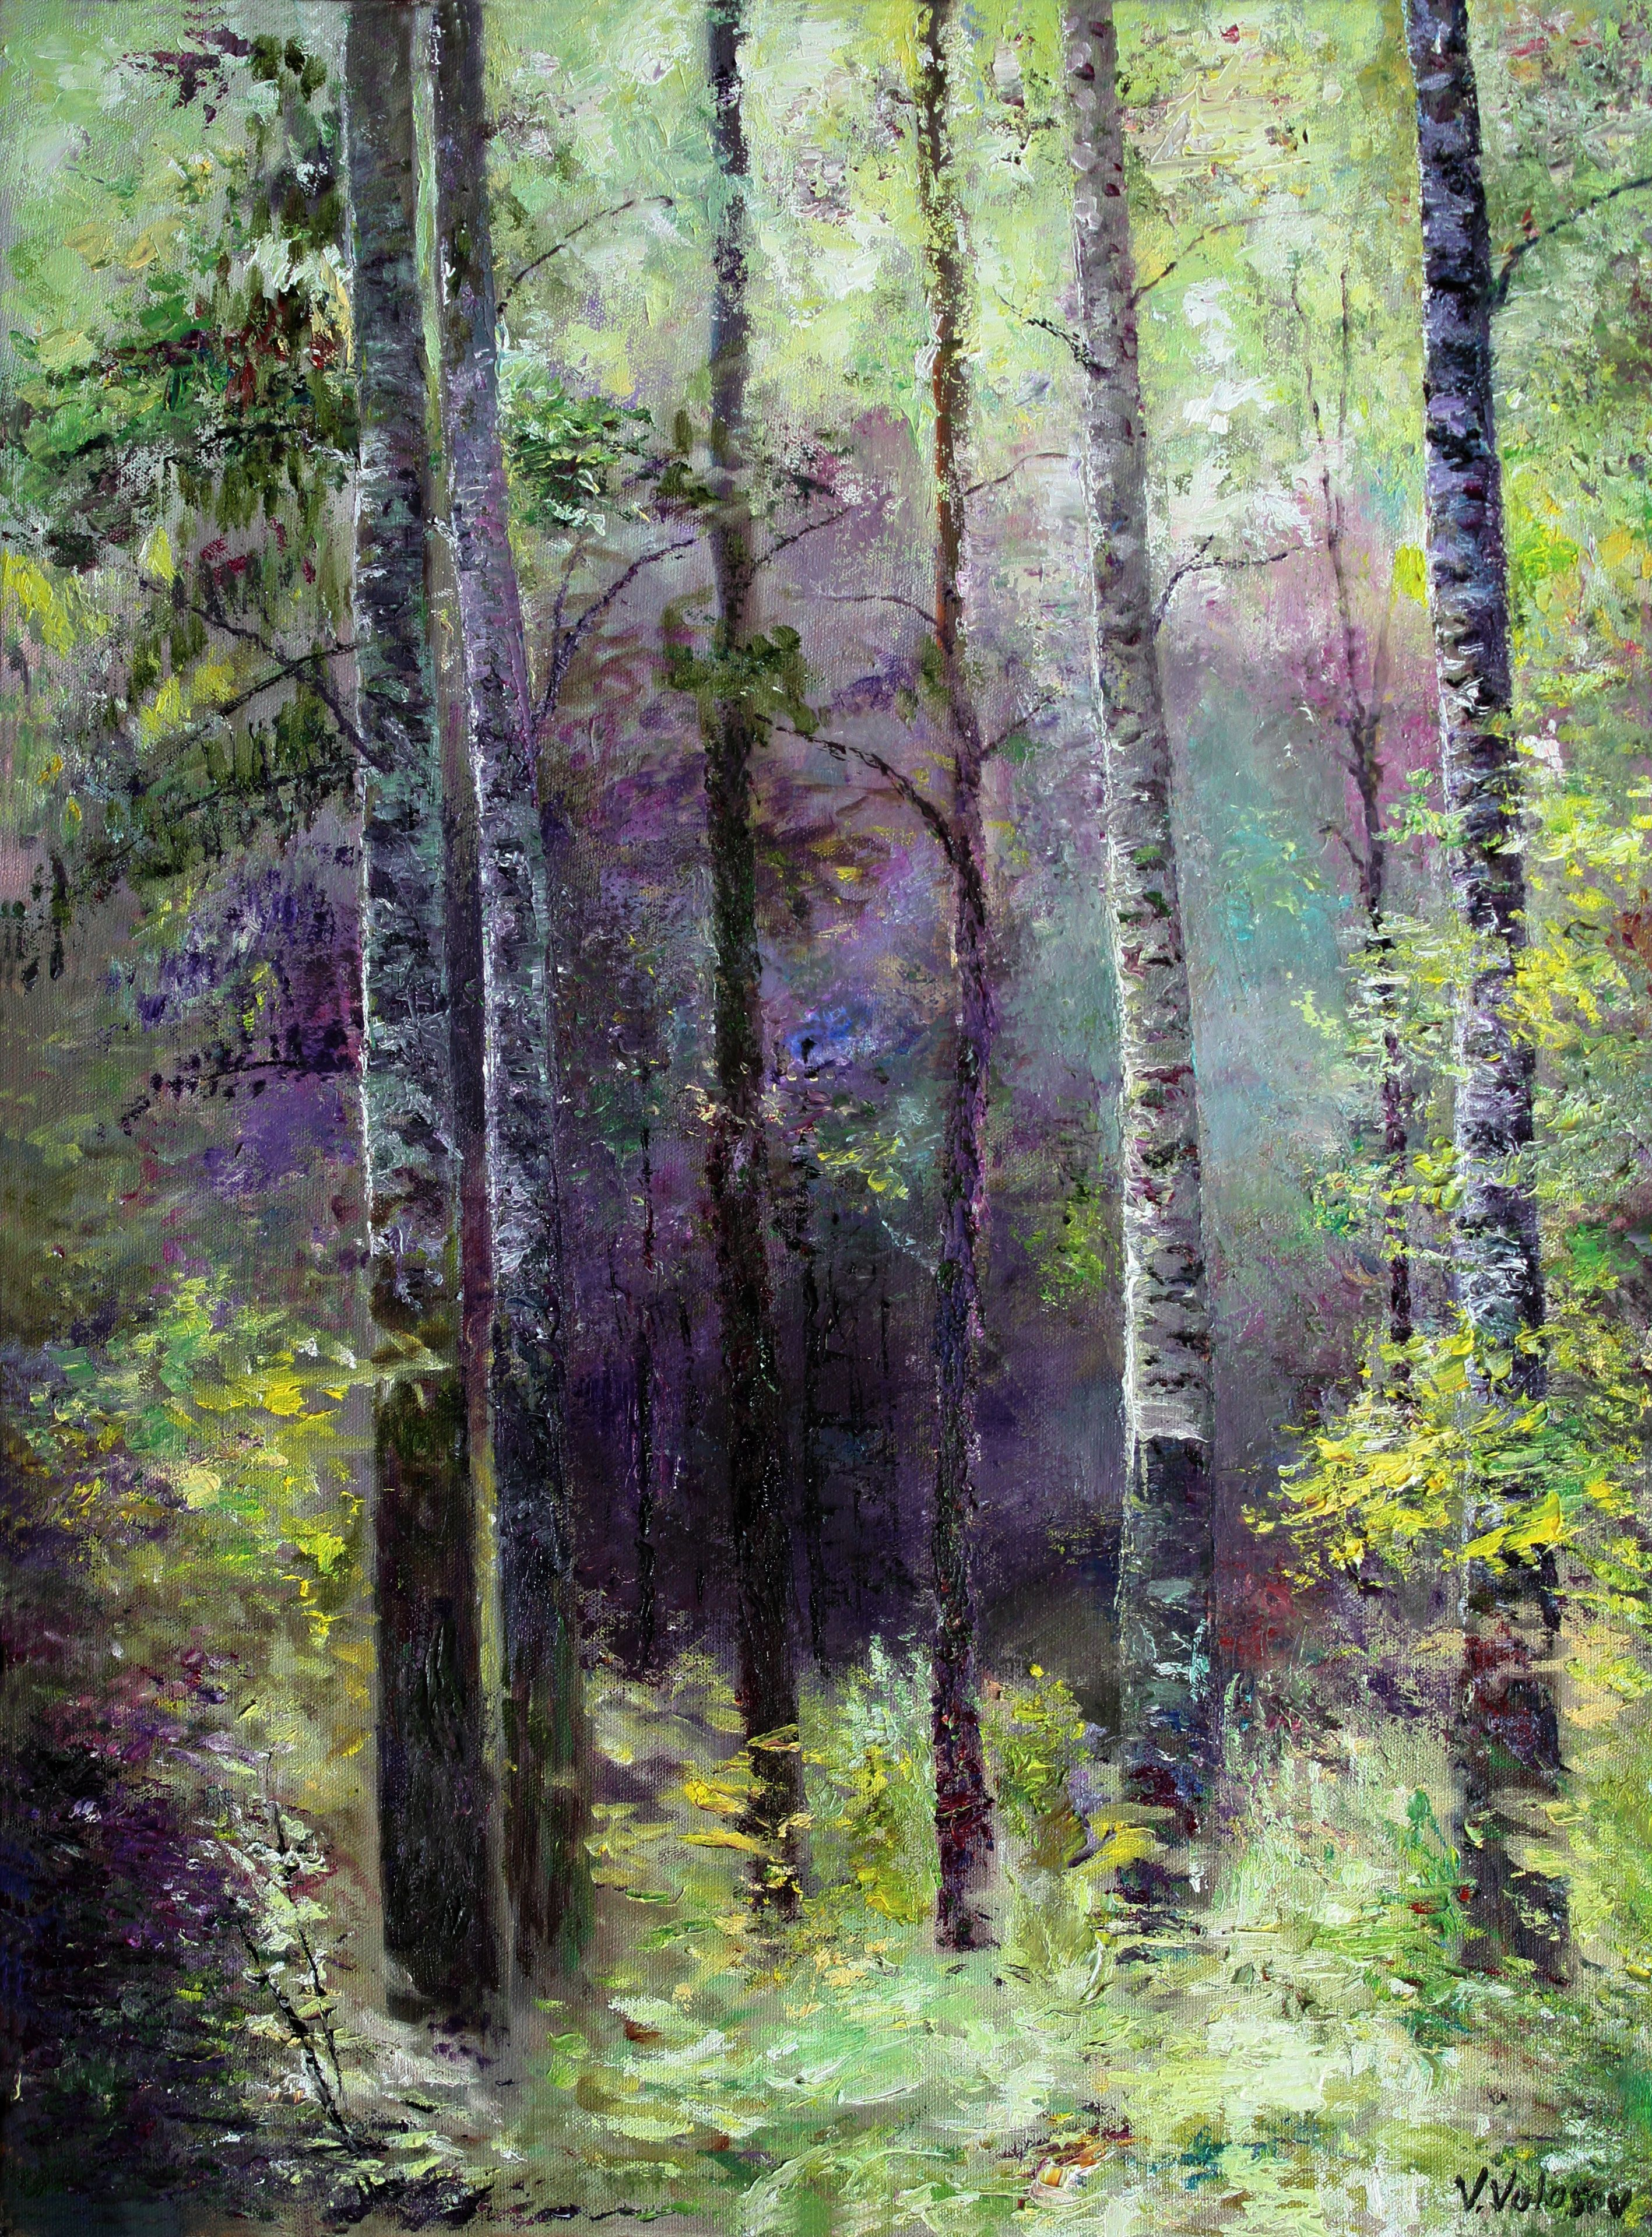 The northern hardwood forest in the adirondack mountains is dominated by deciduous trees and provides a home for a wide variety of wildlife and plants. Medium Original Impressionist Painting Oil On Canvas In Dark Blue Forest Peinture De Foret Huile Sur Toile Paysages En Peinture A L Huile